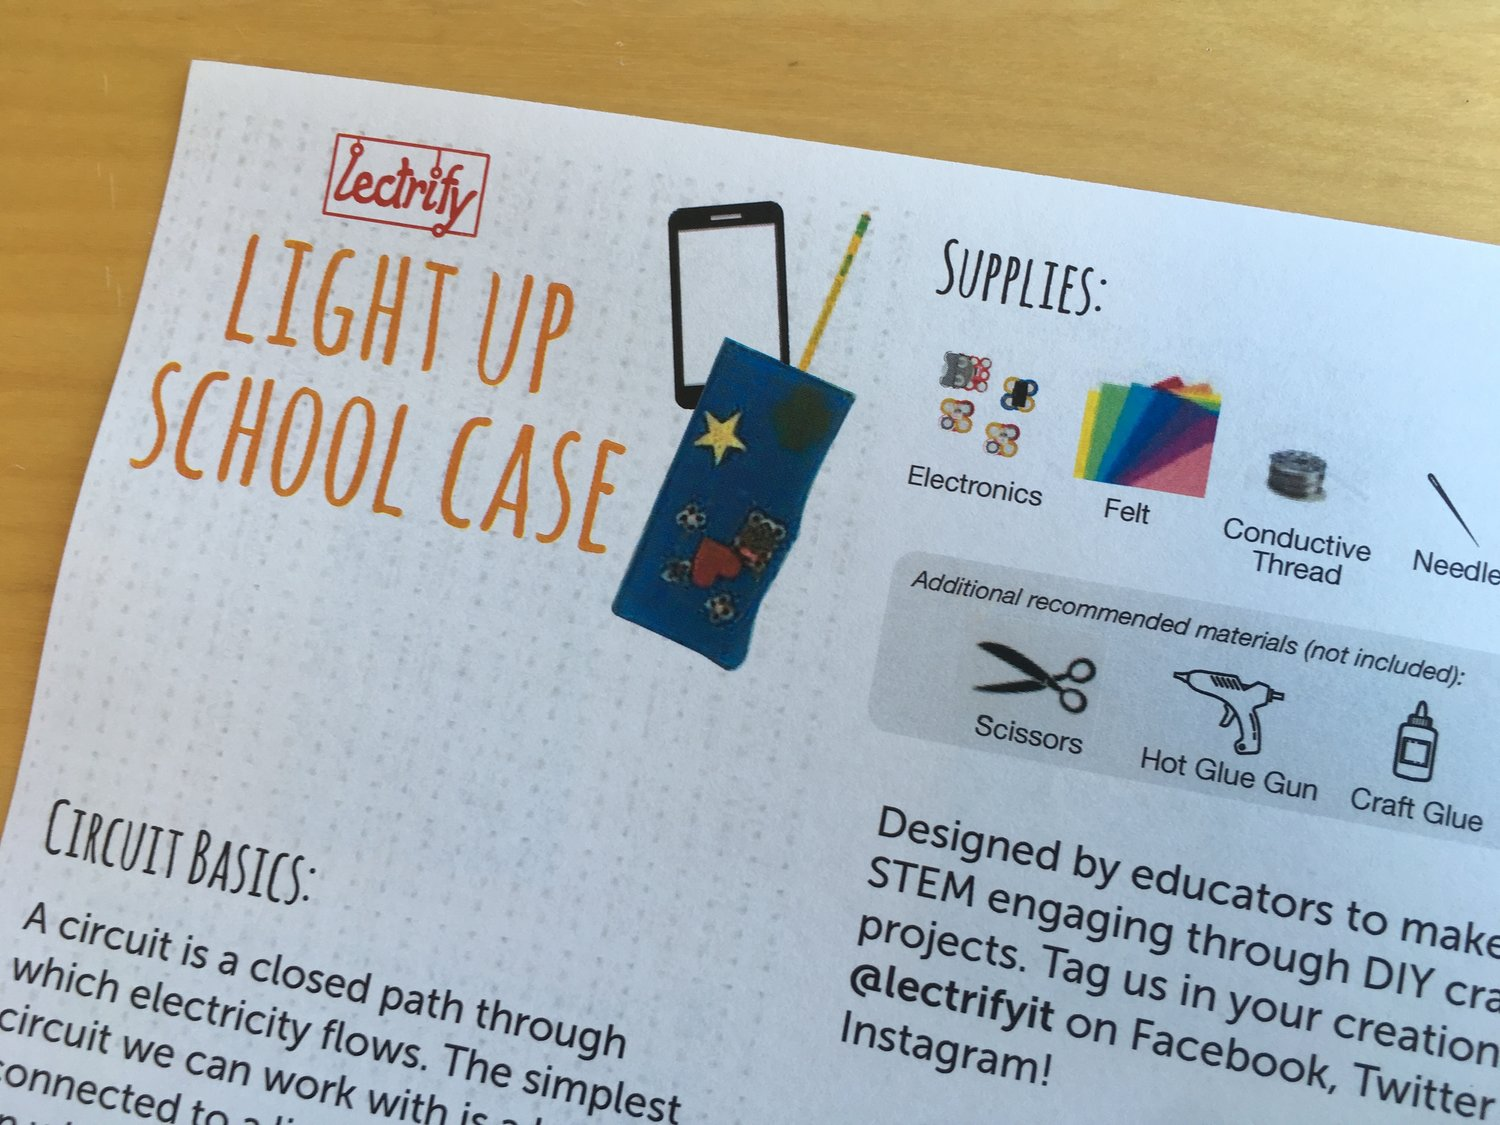 Scouts Stem Projects Lectrify Circuit Basics With Your Students And Have Them Build A Closed